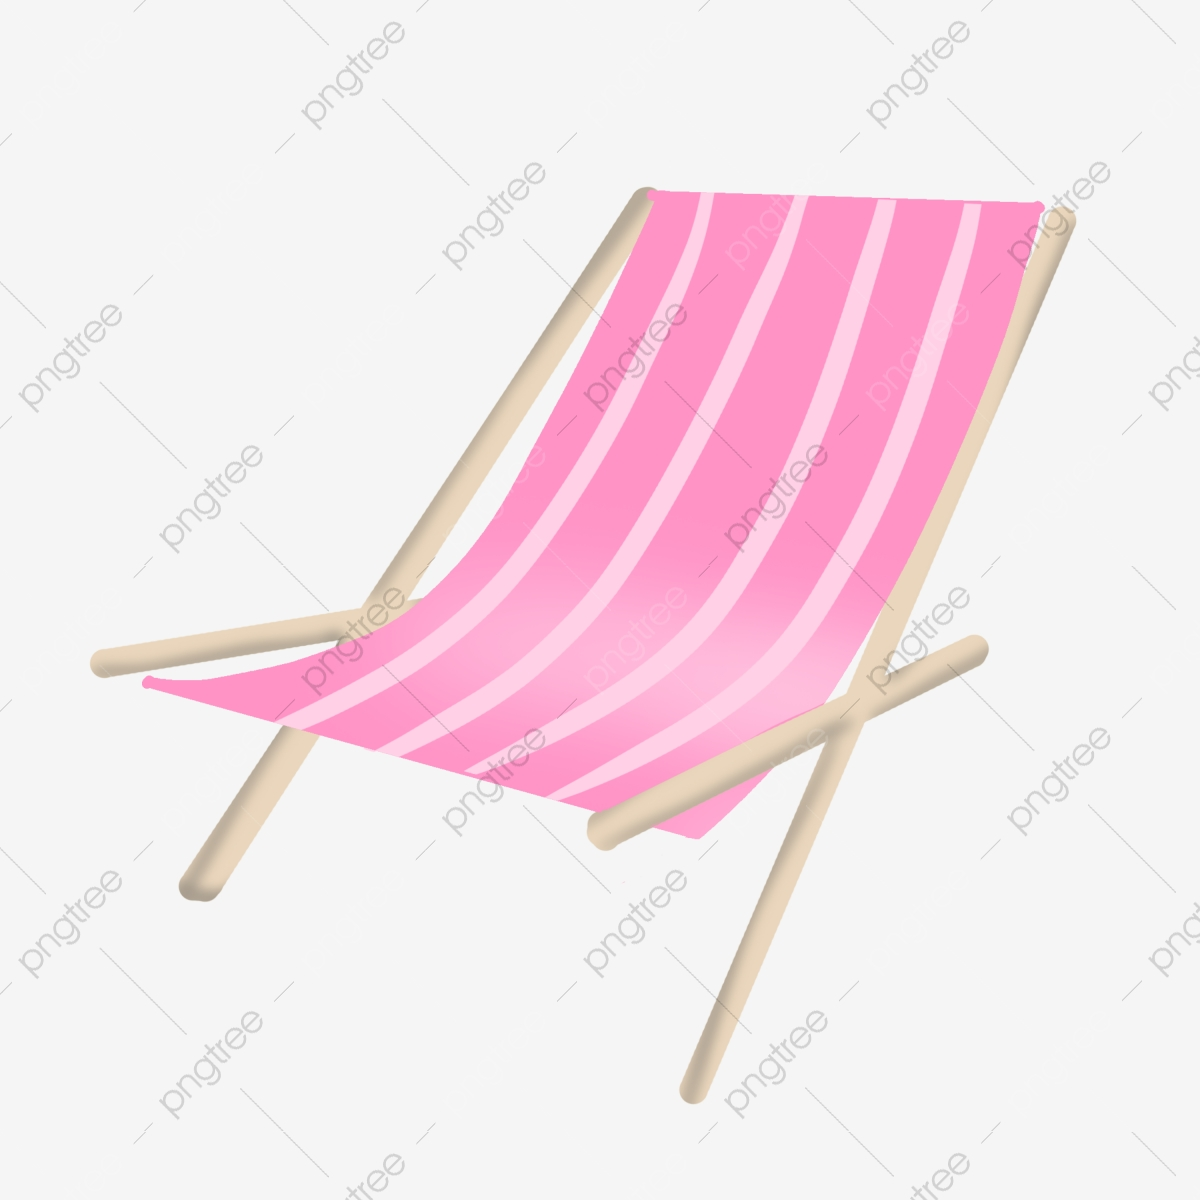 Pink Beach Lounger Illustration Beach Lounge Chair Rocking Chair Png Transparent Clipart Image And Psd File For Free Download